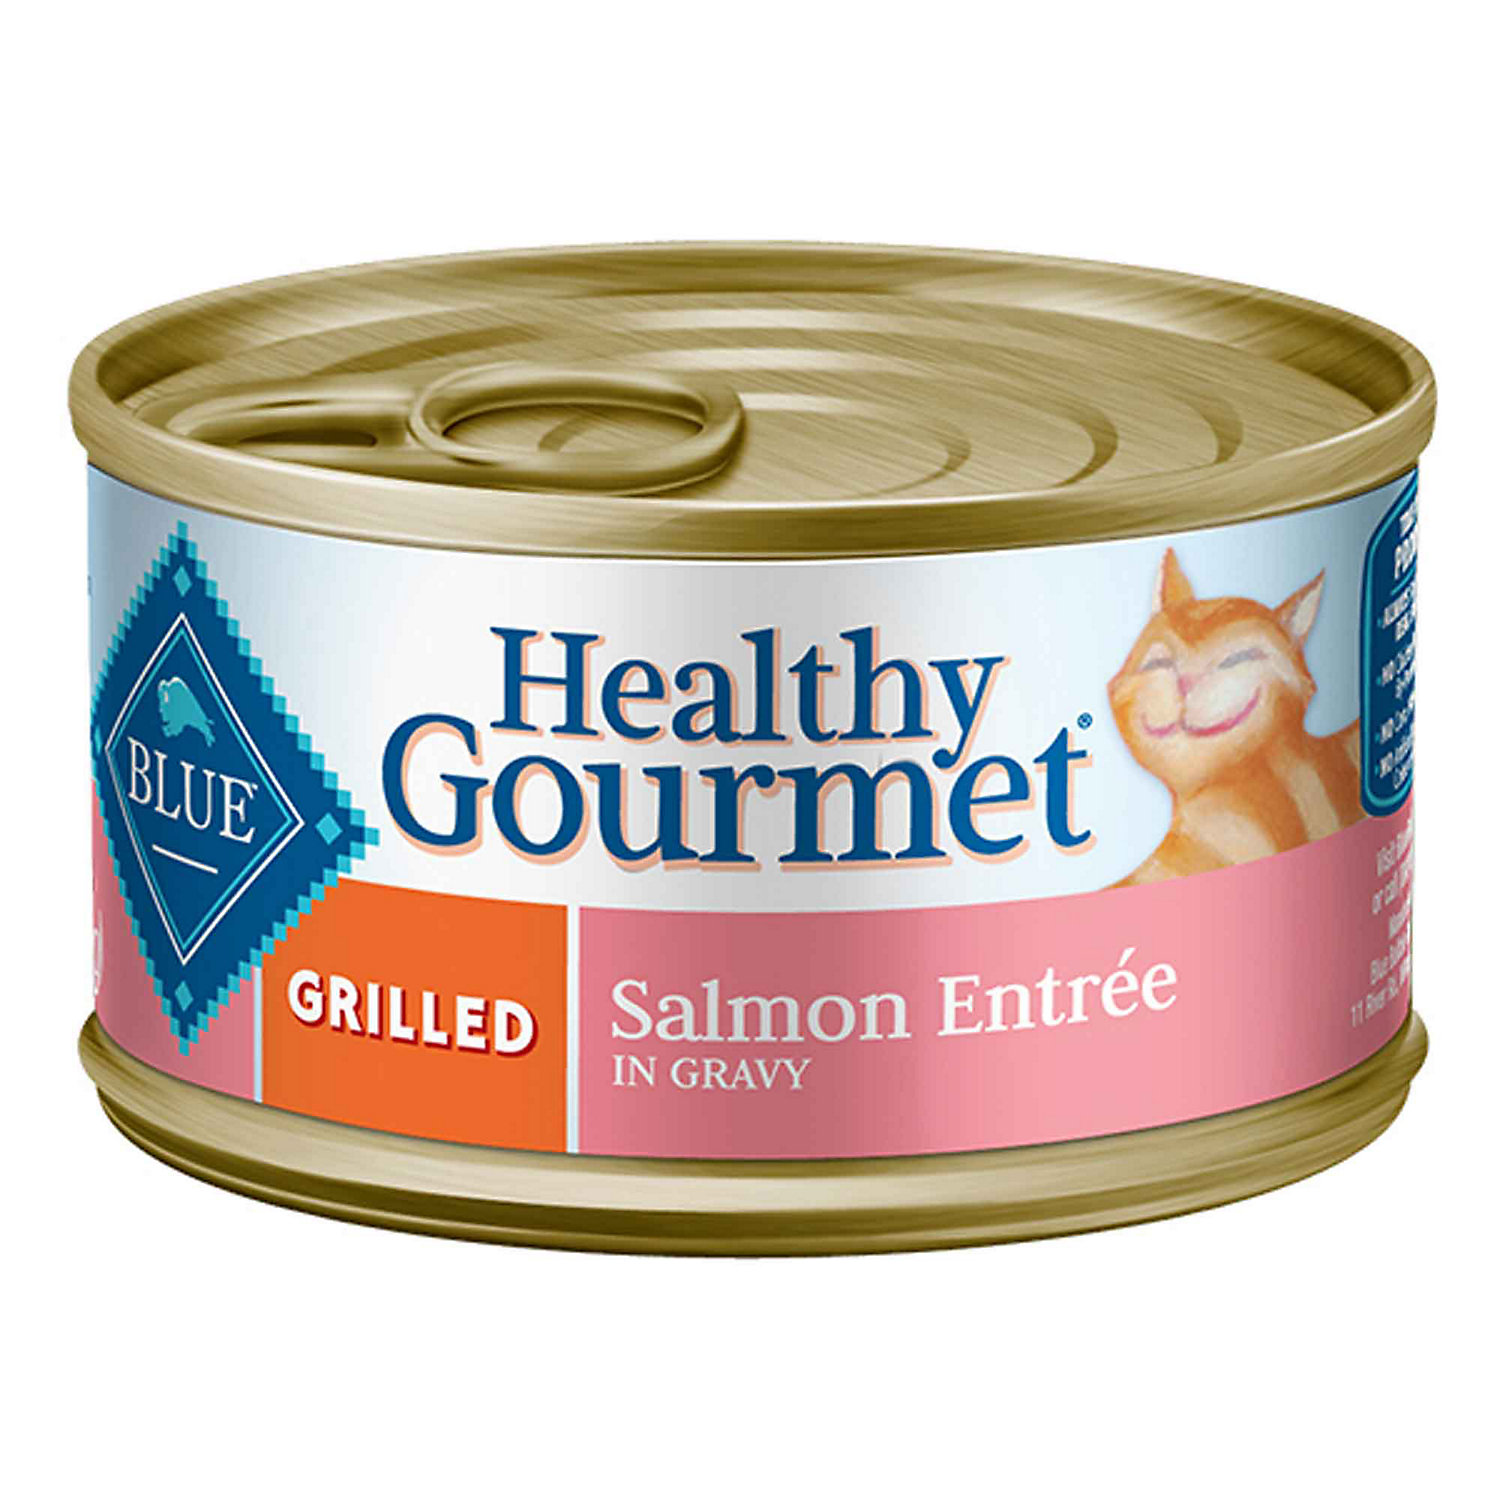 Blue Buffalo Healthy Gourmet Grilled Salmon Adult Canned Cat Food 3 Oz. Case Of 24